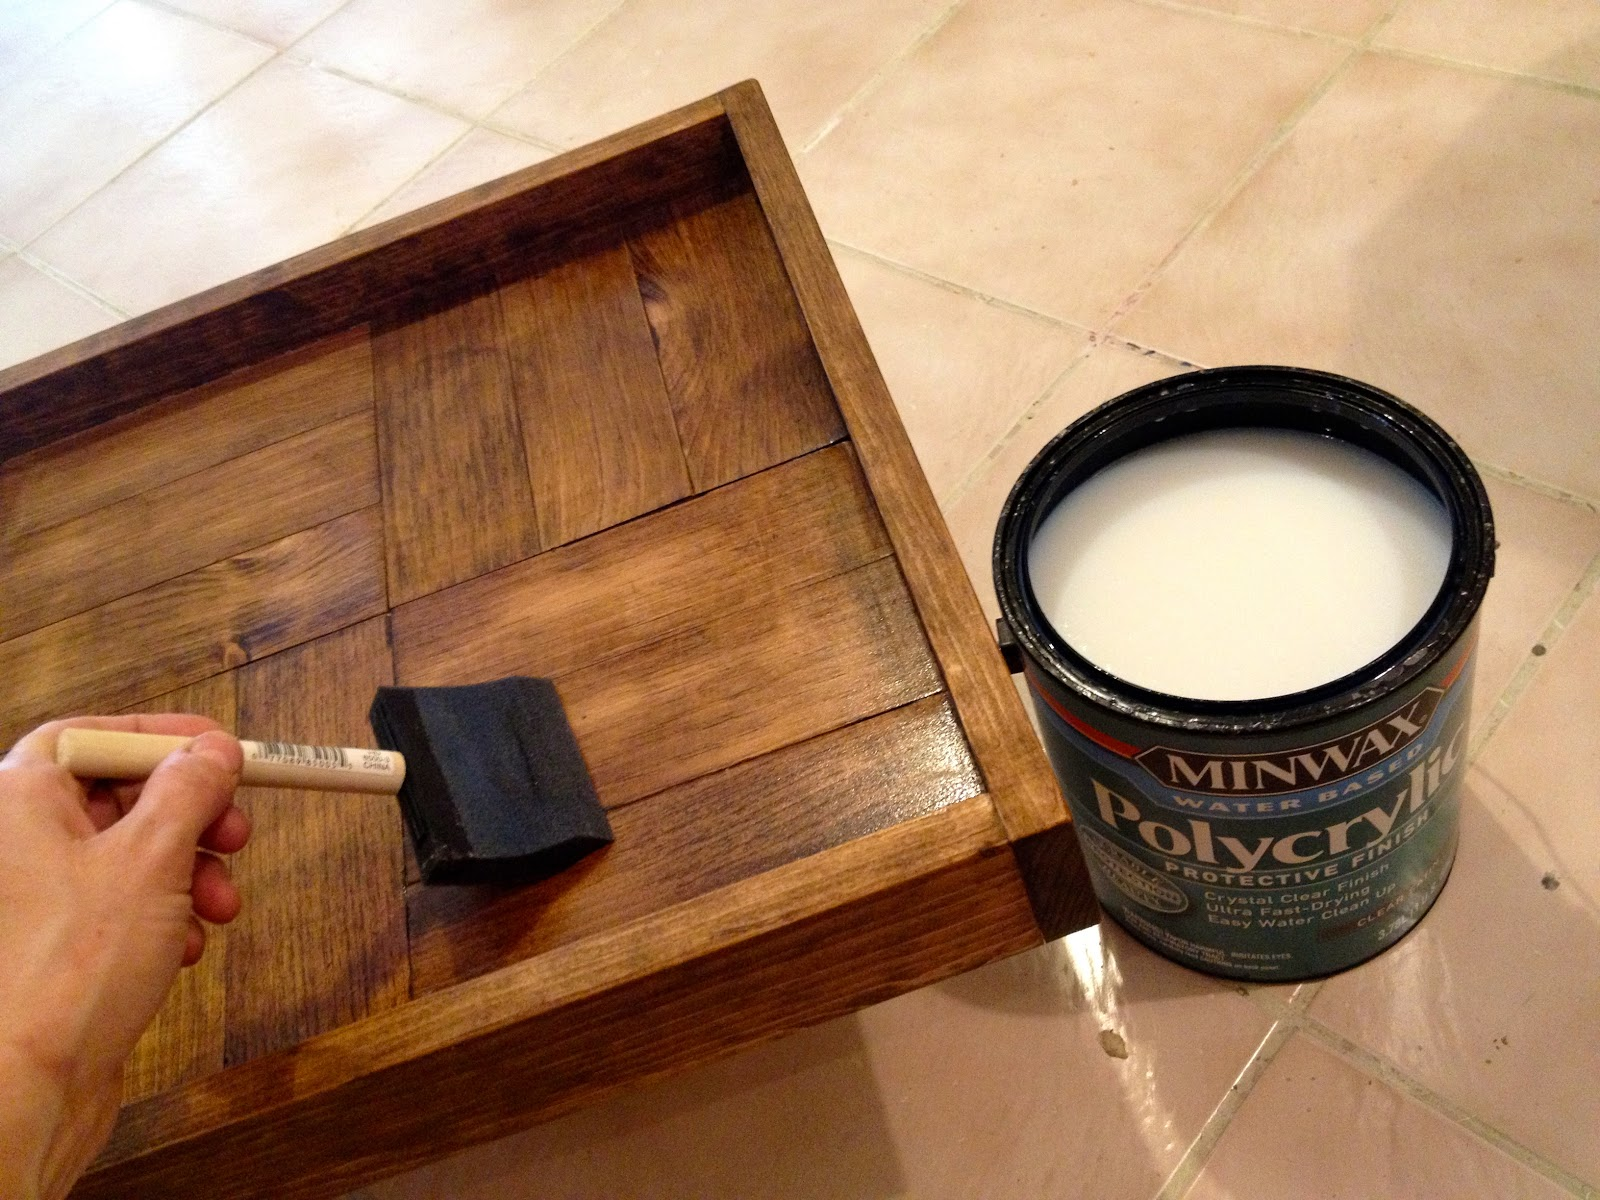 That S My Letter Diy Ottoman Tray